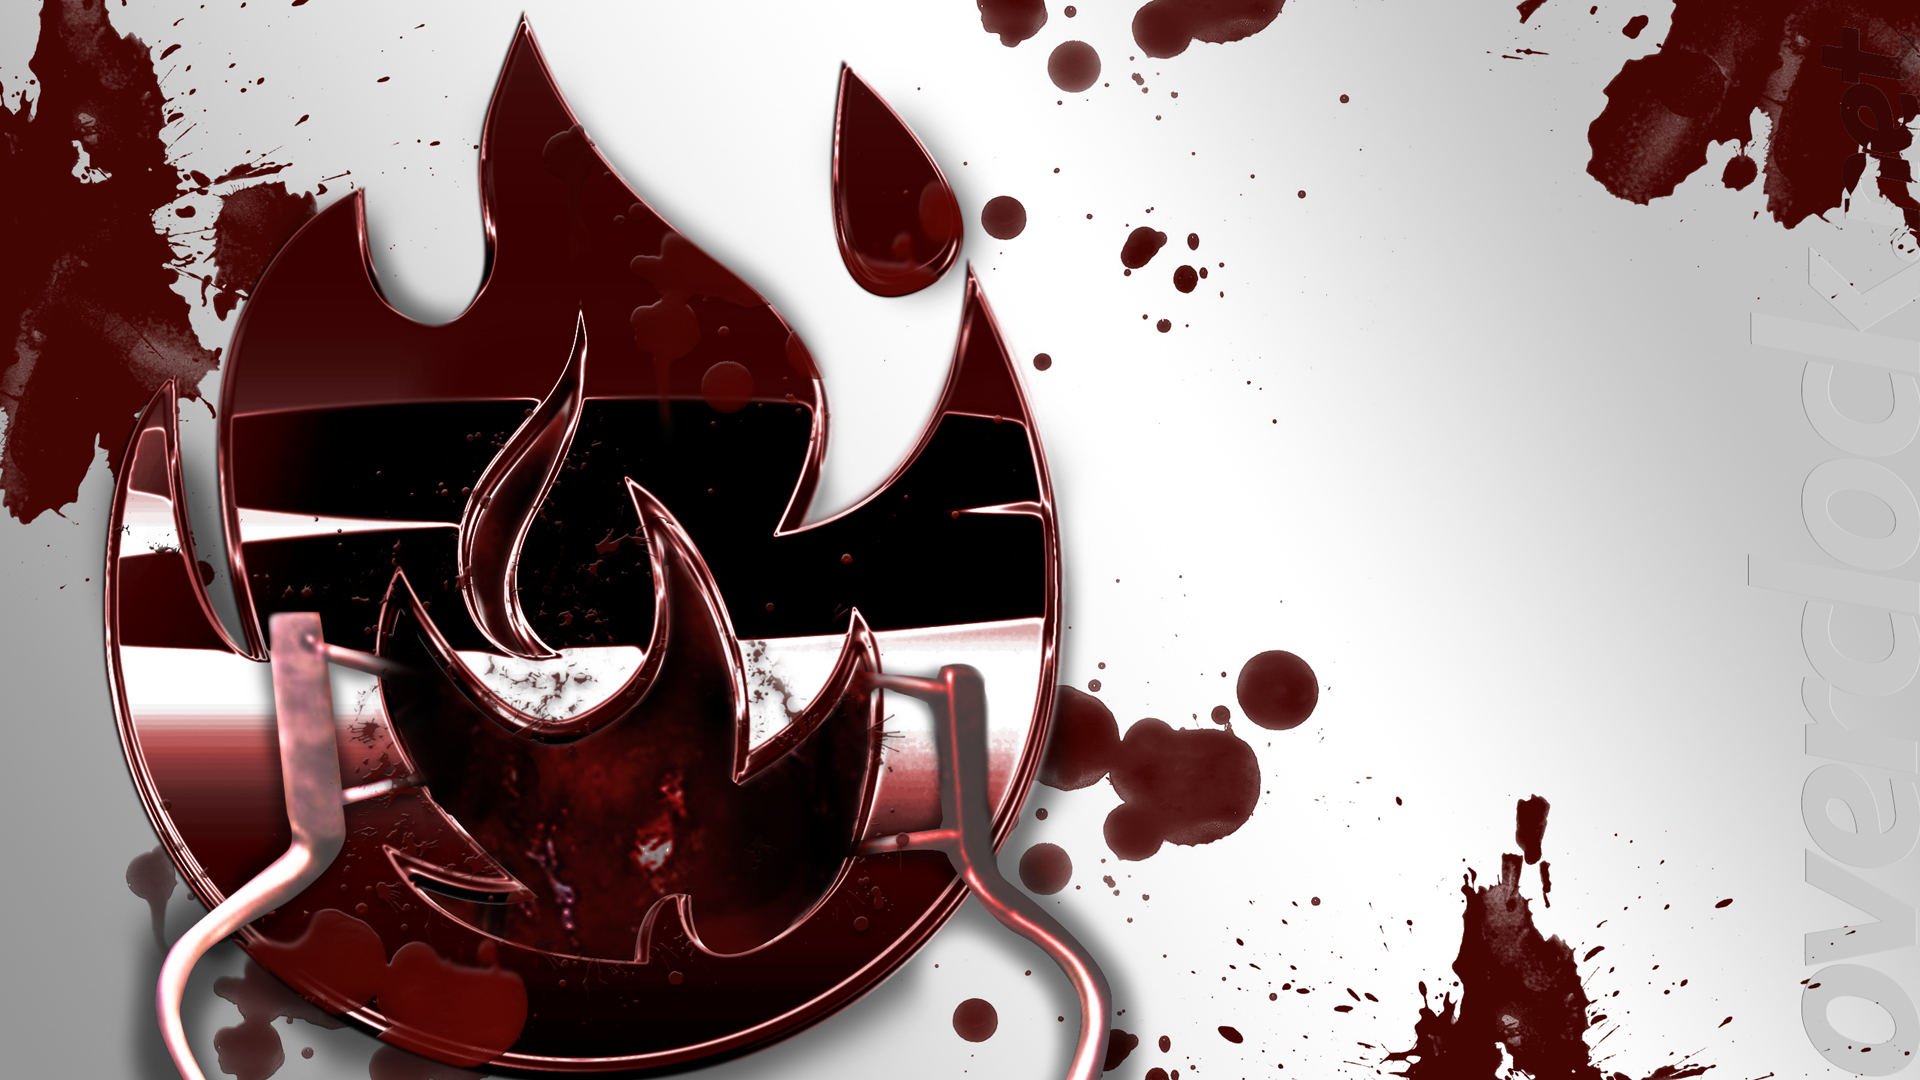 Was asked to do a blood splatter wallpaper for a resident eveil theme build.. So here it is.